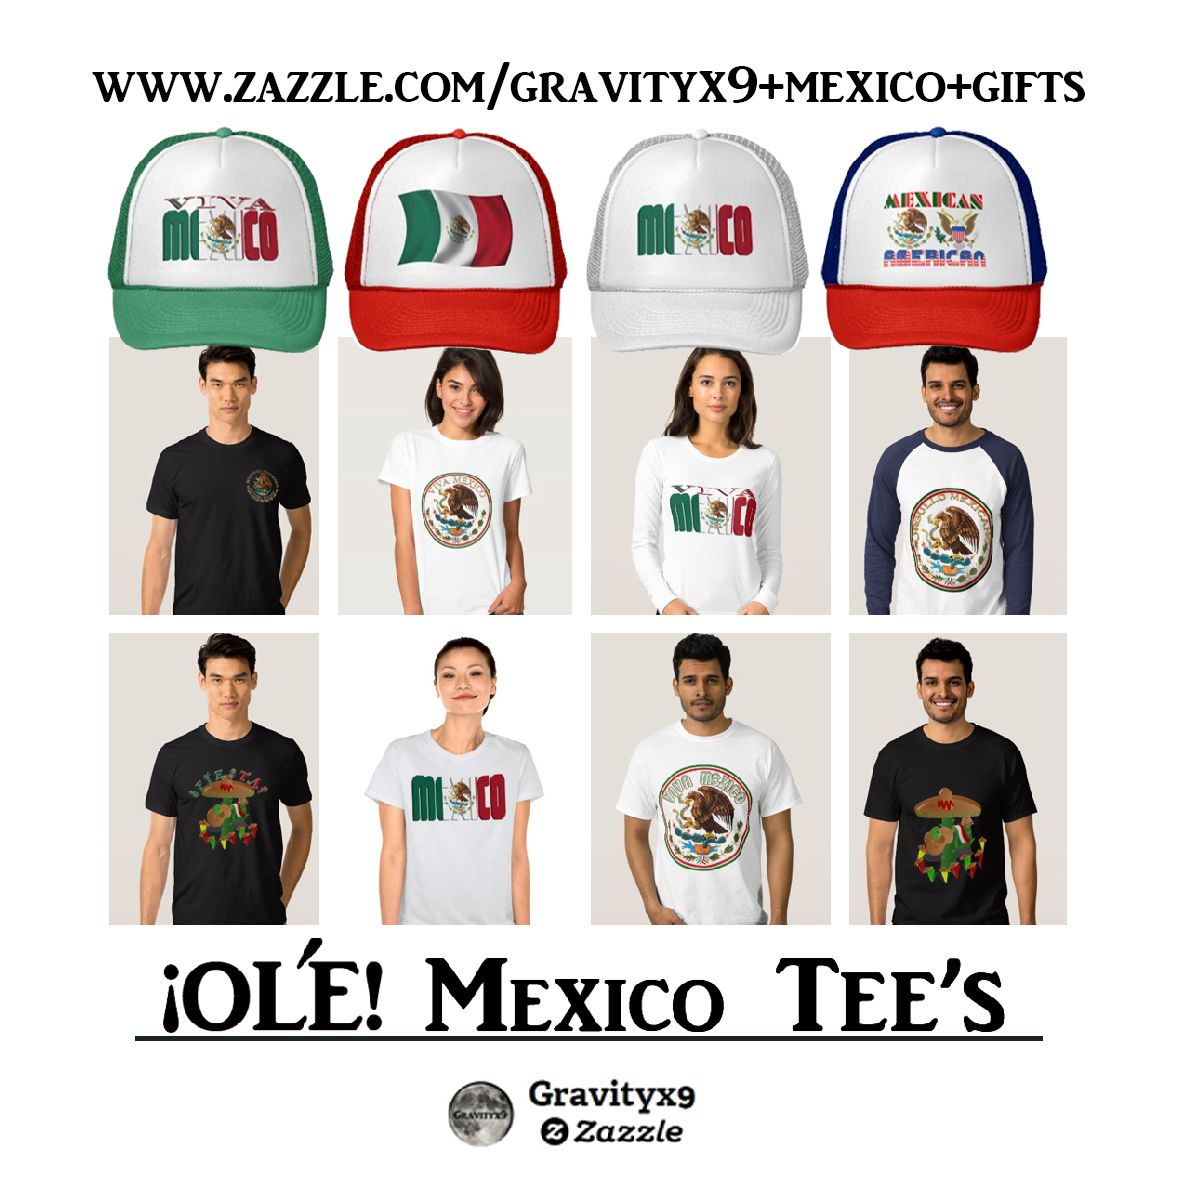 Ole Fiesta Time Mexican Independence Day Tee Shirts And Hats At